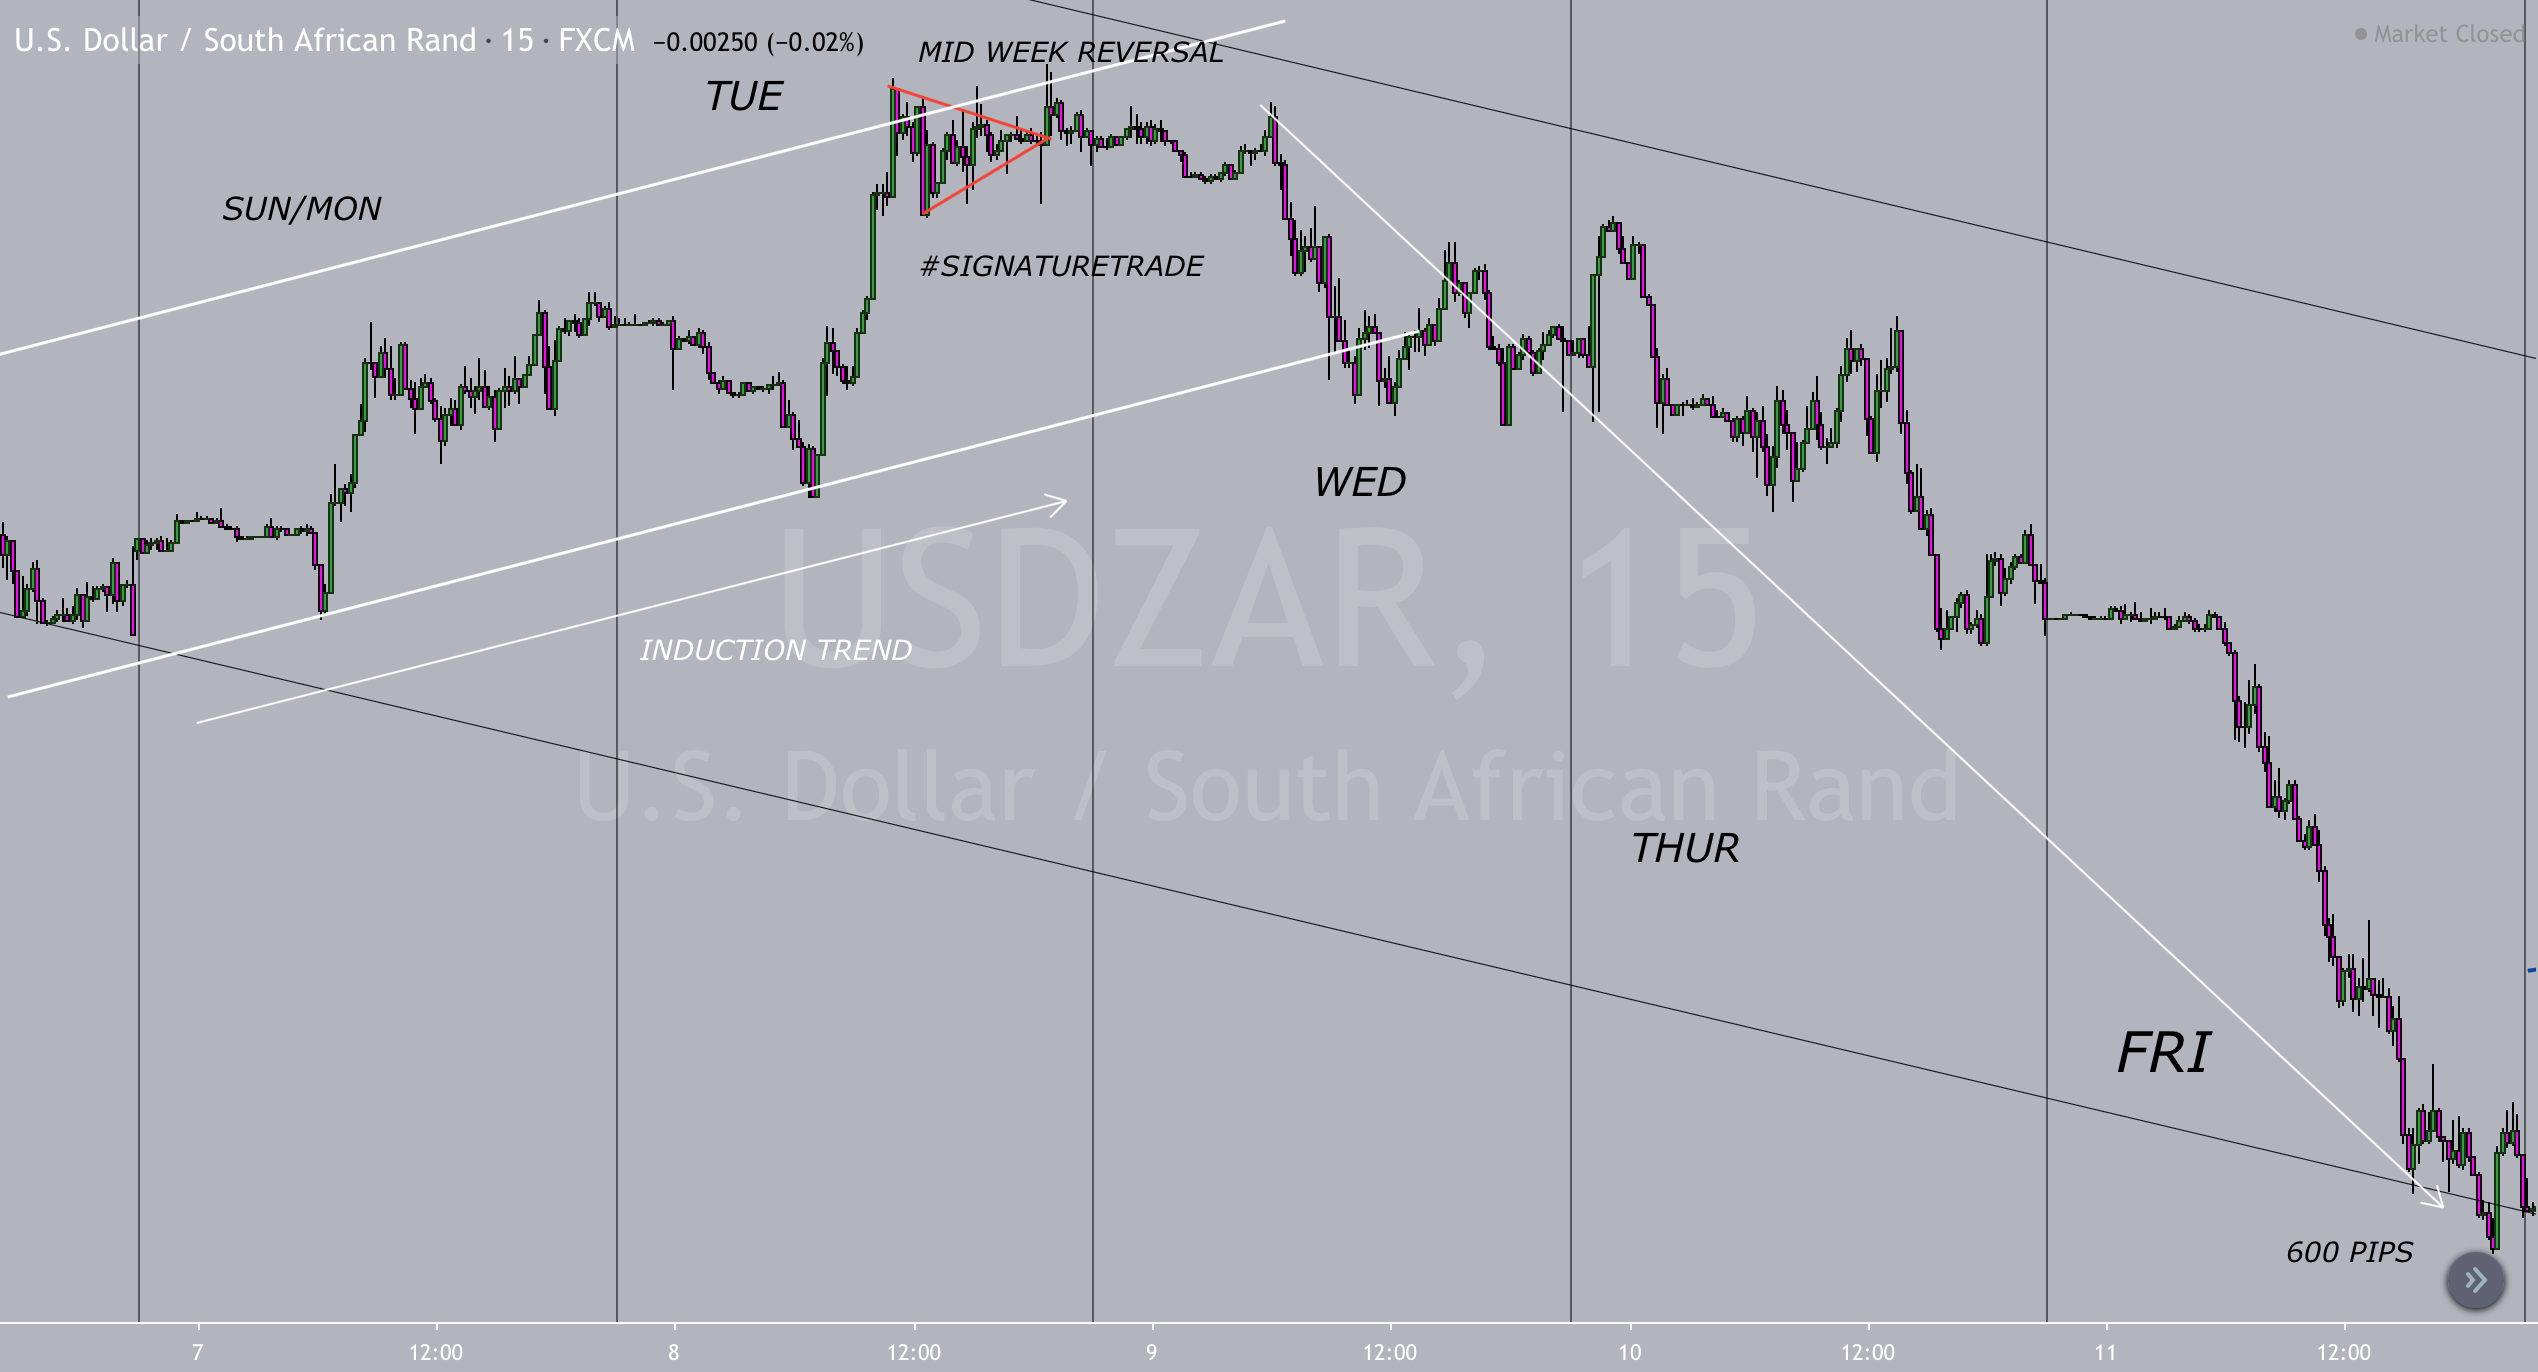 Forex Mid-Week Reversal – Fact or Fiction?